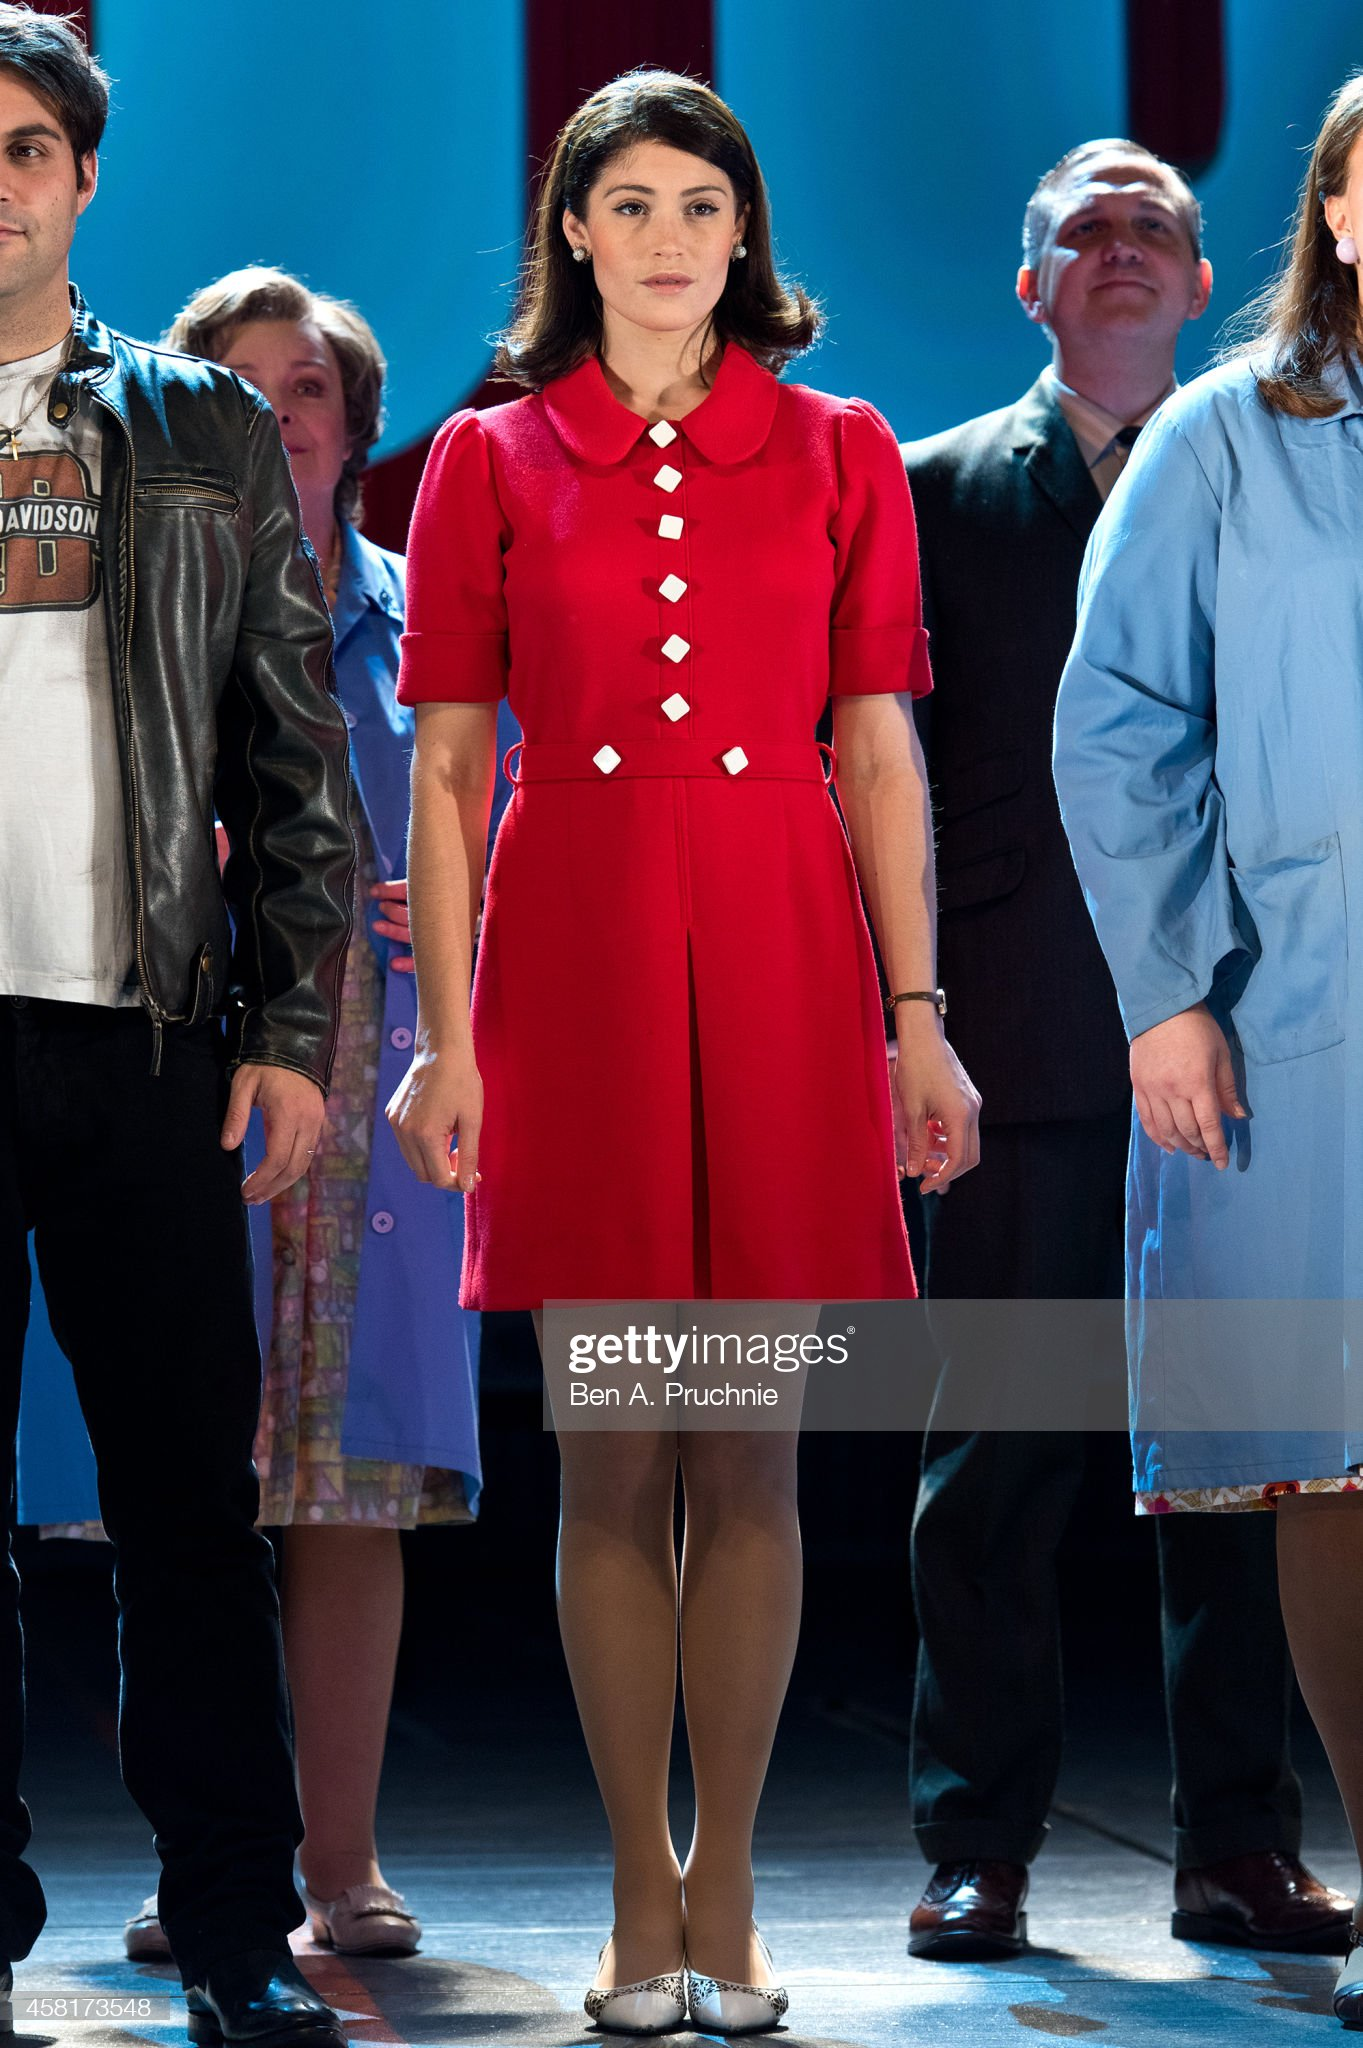 gemma-arterton-performs-on-stage-during-a-photocall-for-made-in-at-picture-id458173548